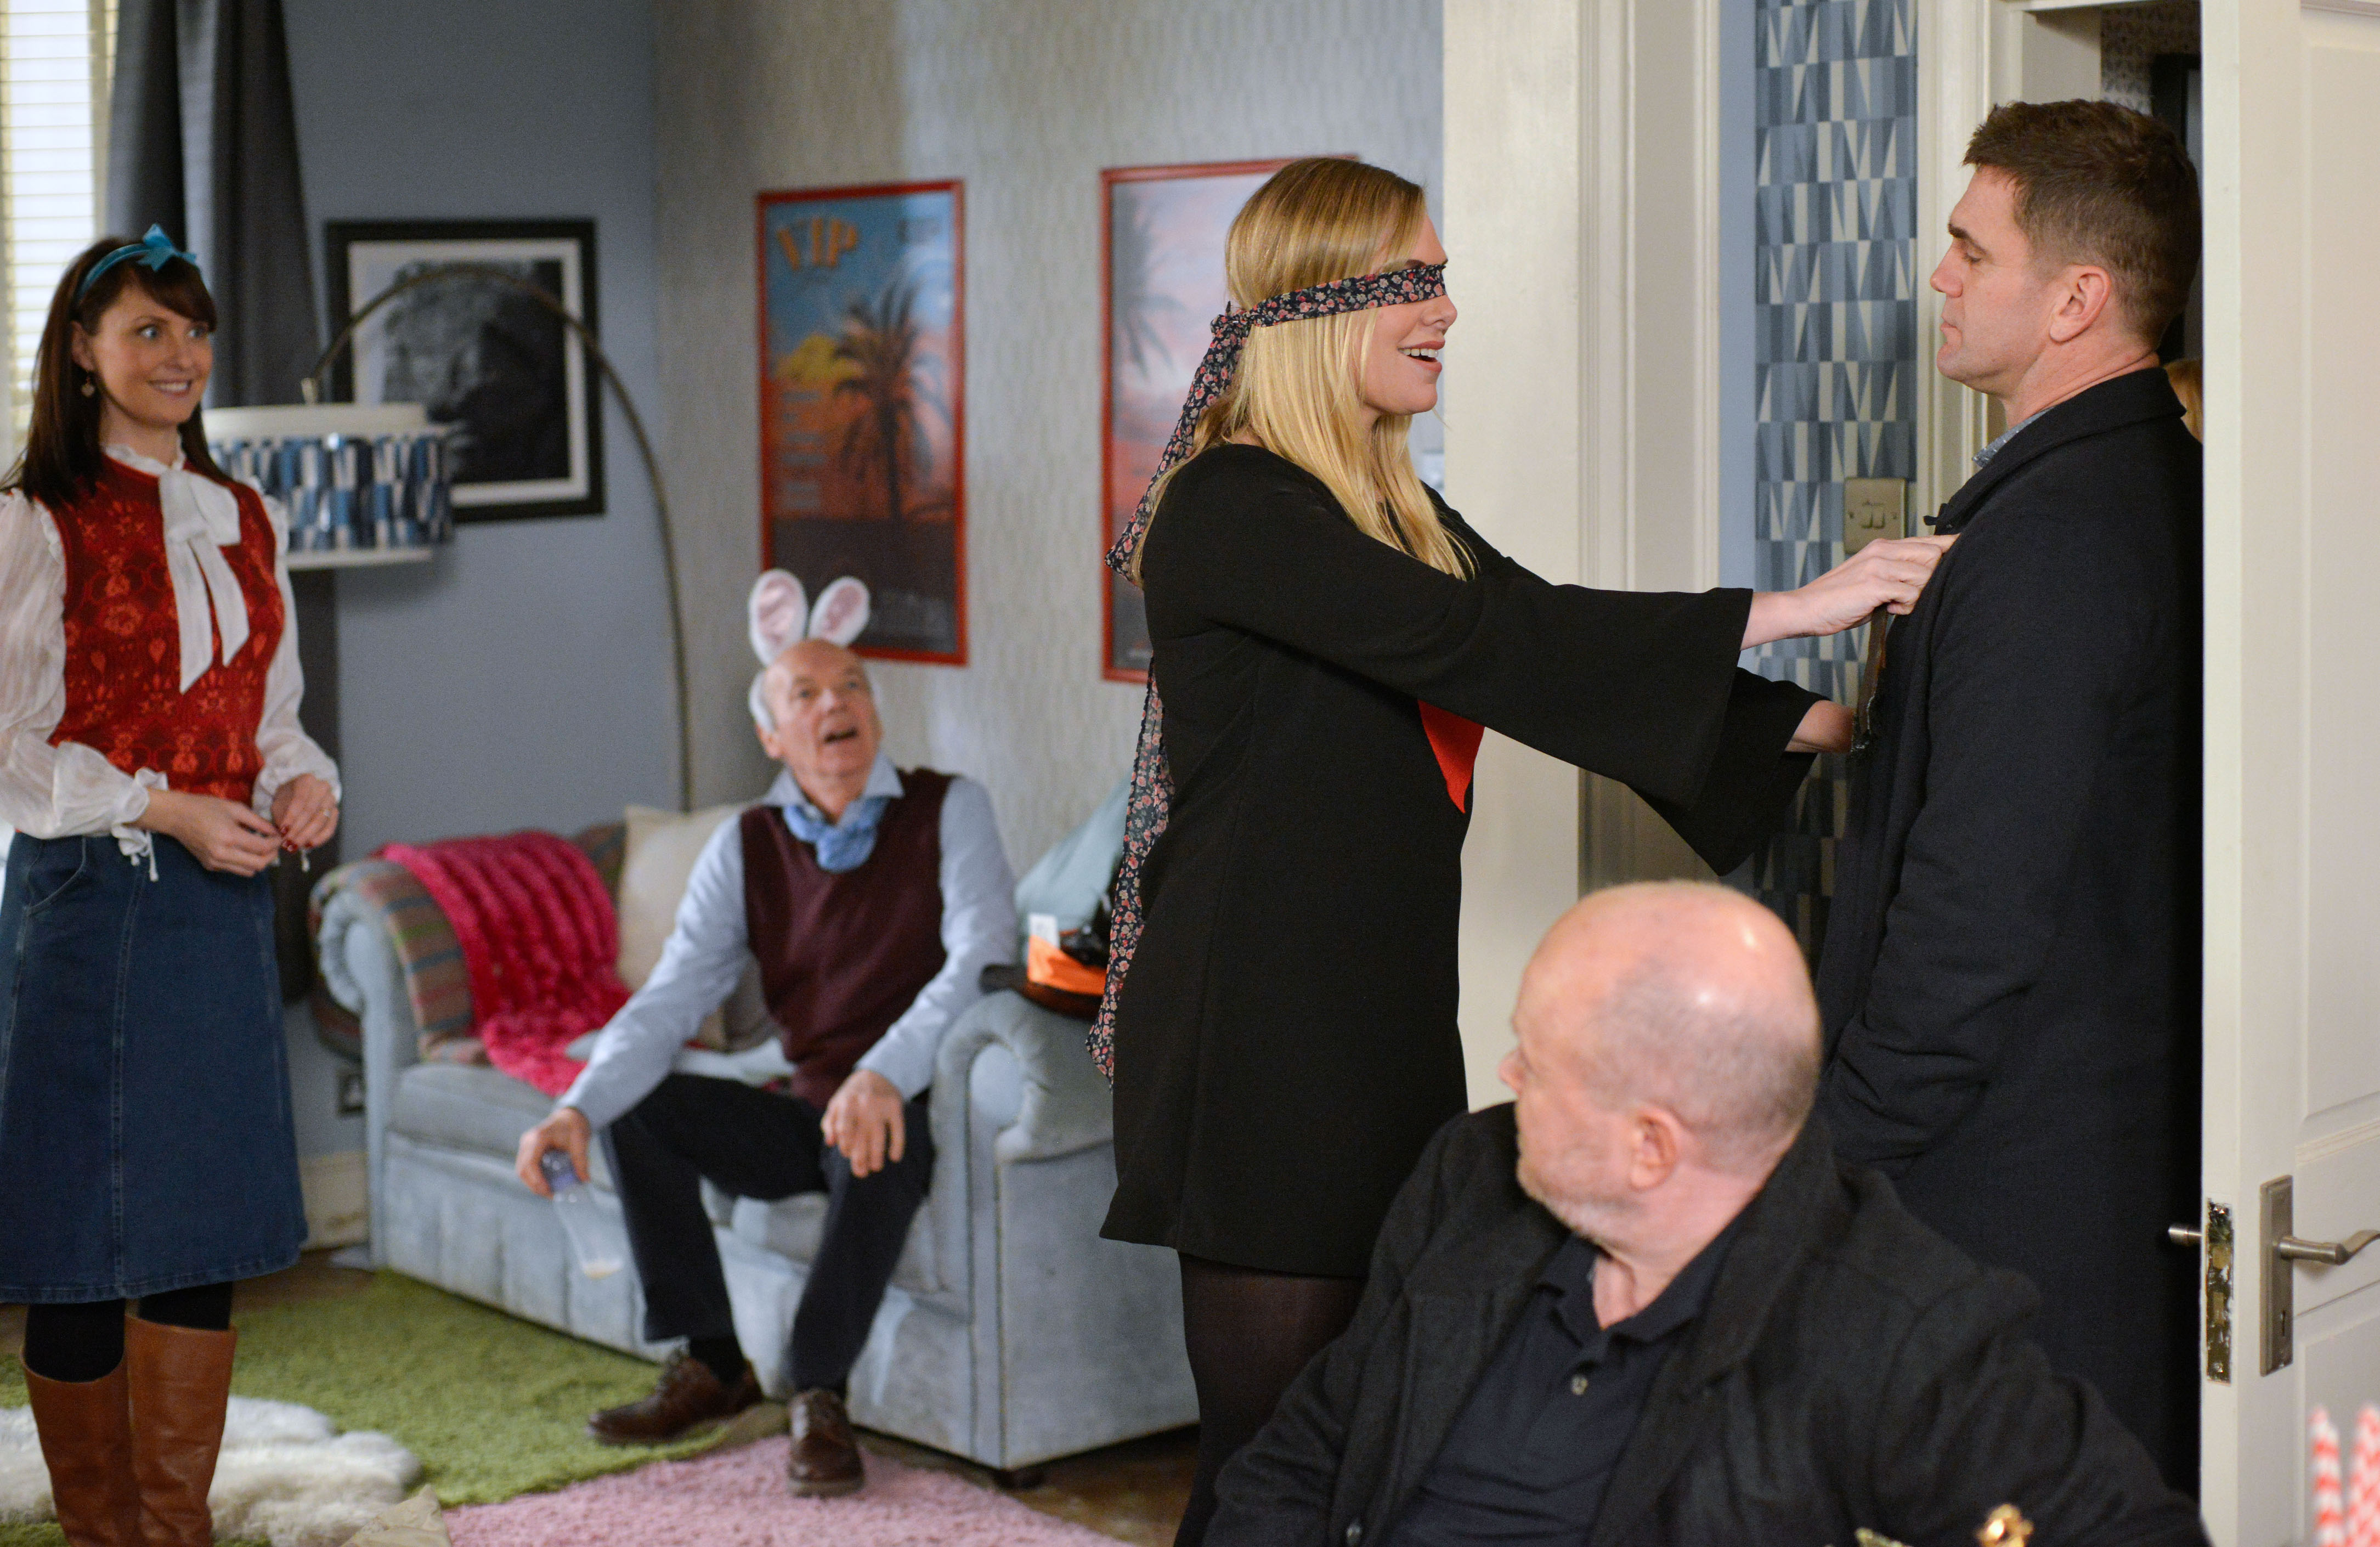 EastEnders spoilers: Ronnie Mitchell gets a shock as Jack Branning returns to Walford